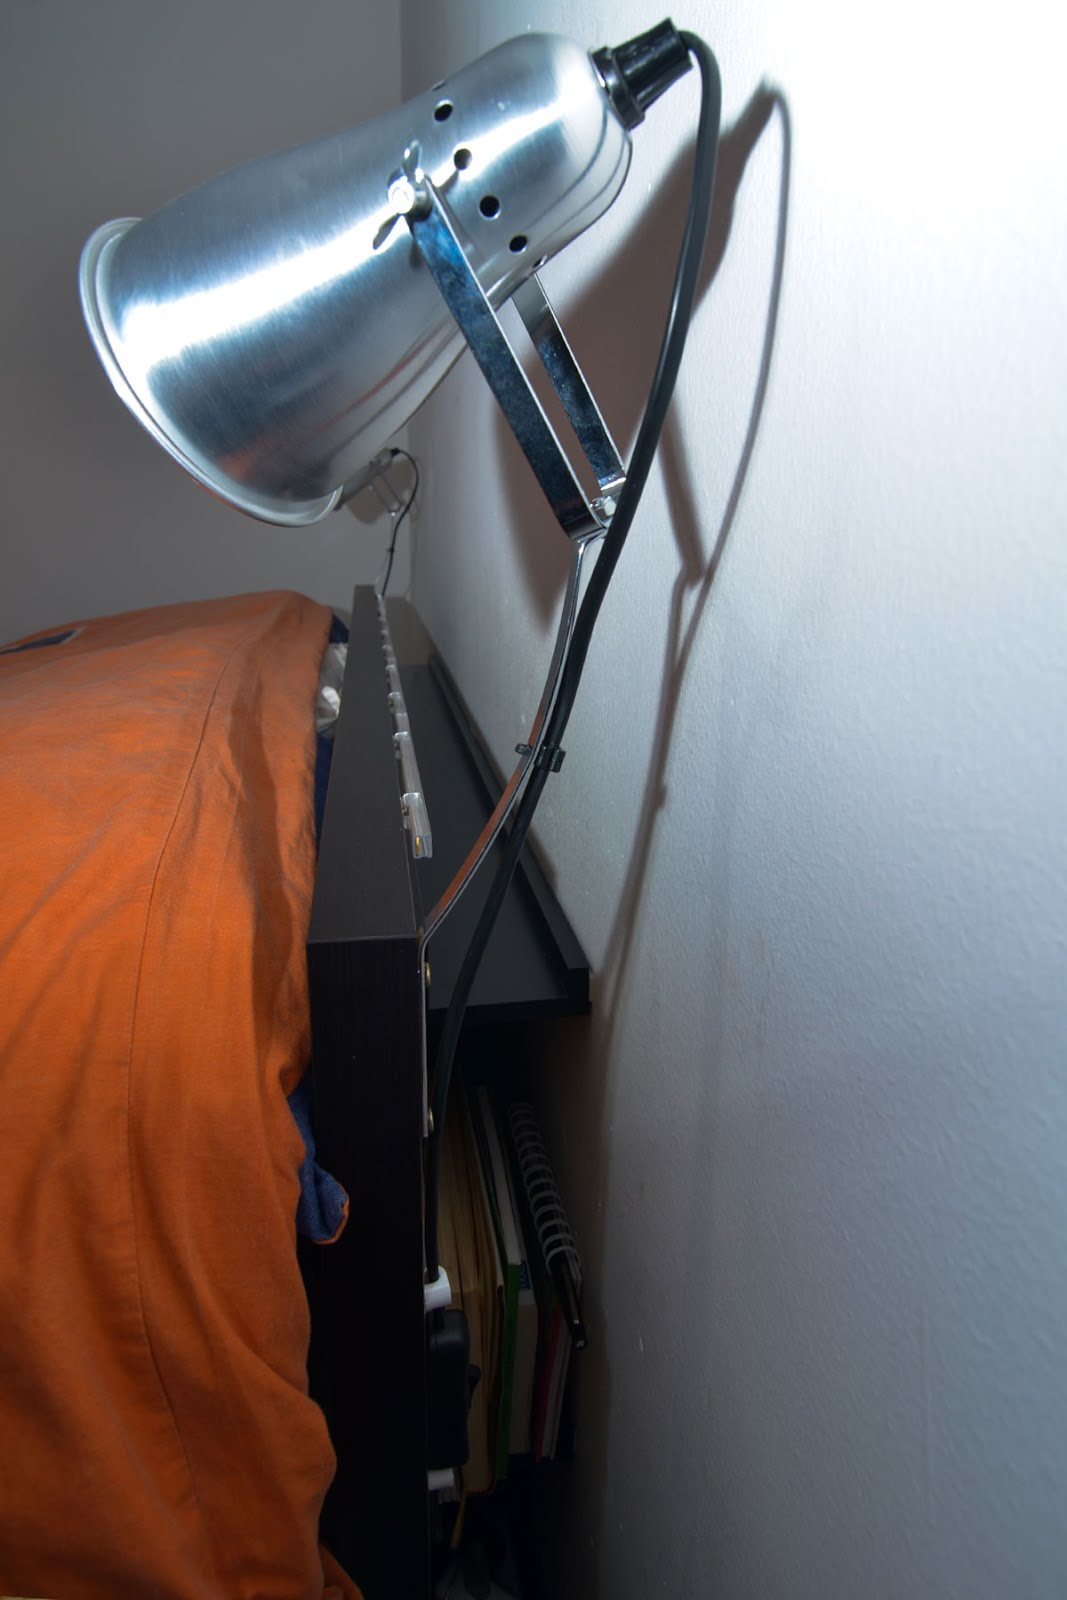 Ikea Ribba Picture Ledge Square Headboard With Space To Hide Electricals Ikea Hackers